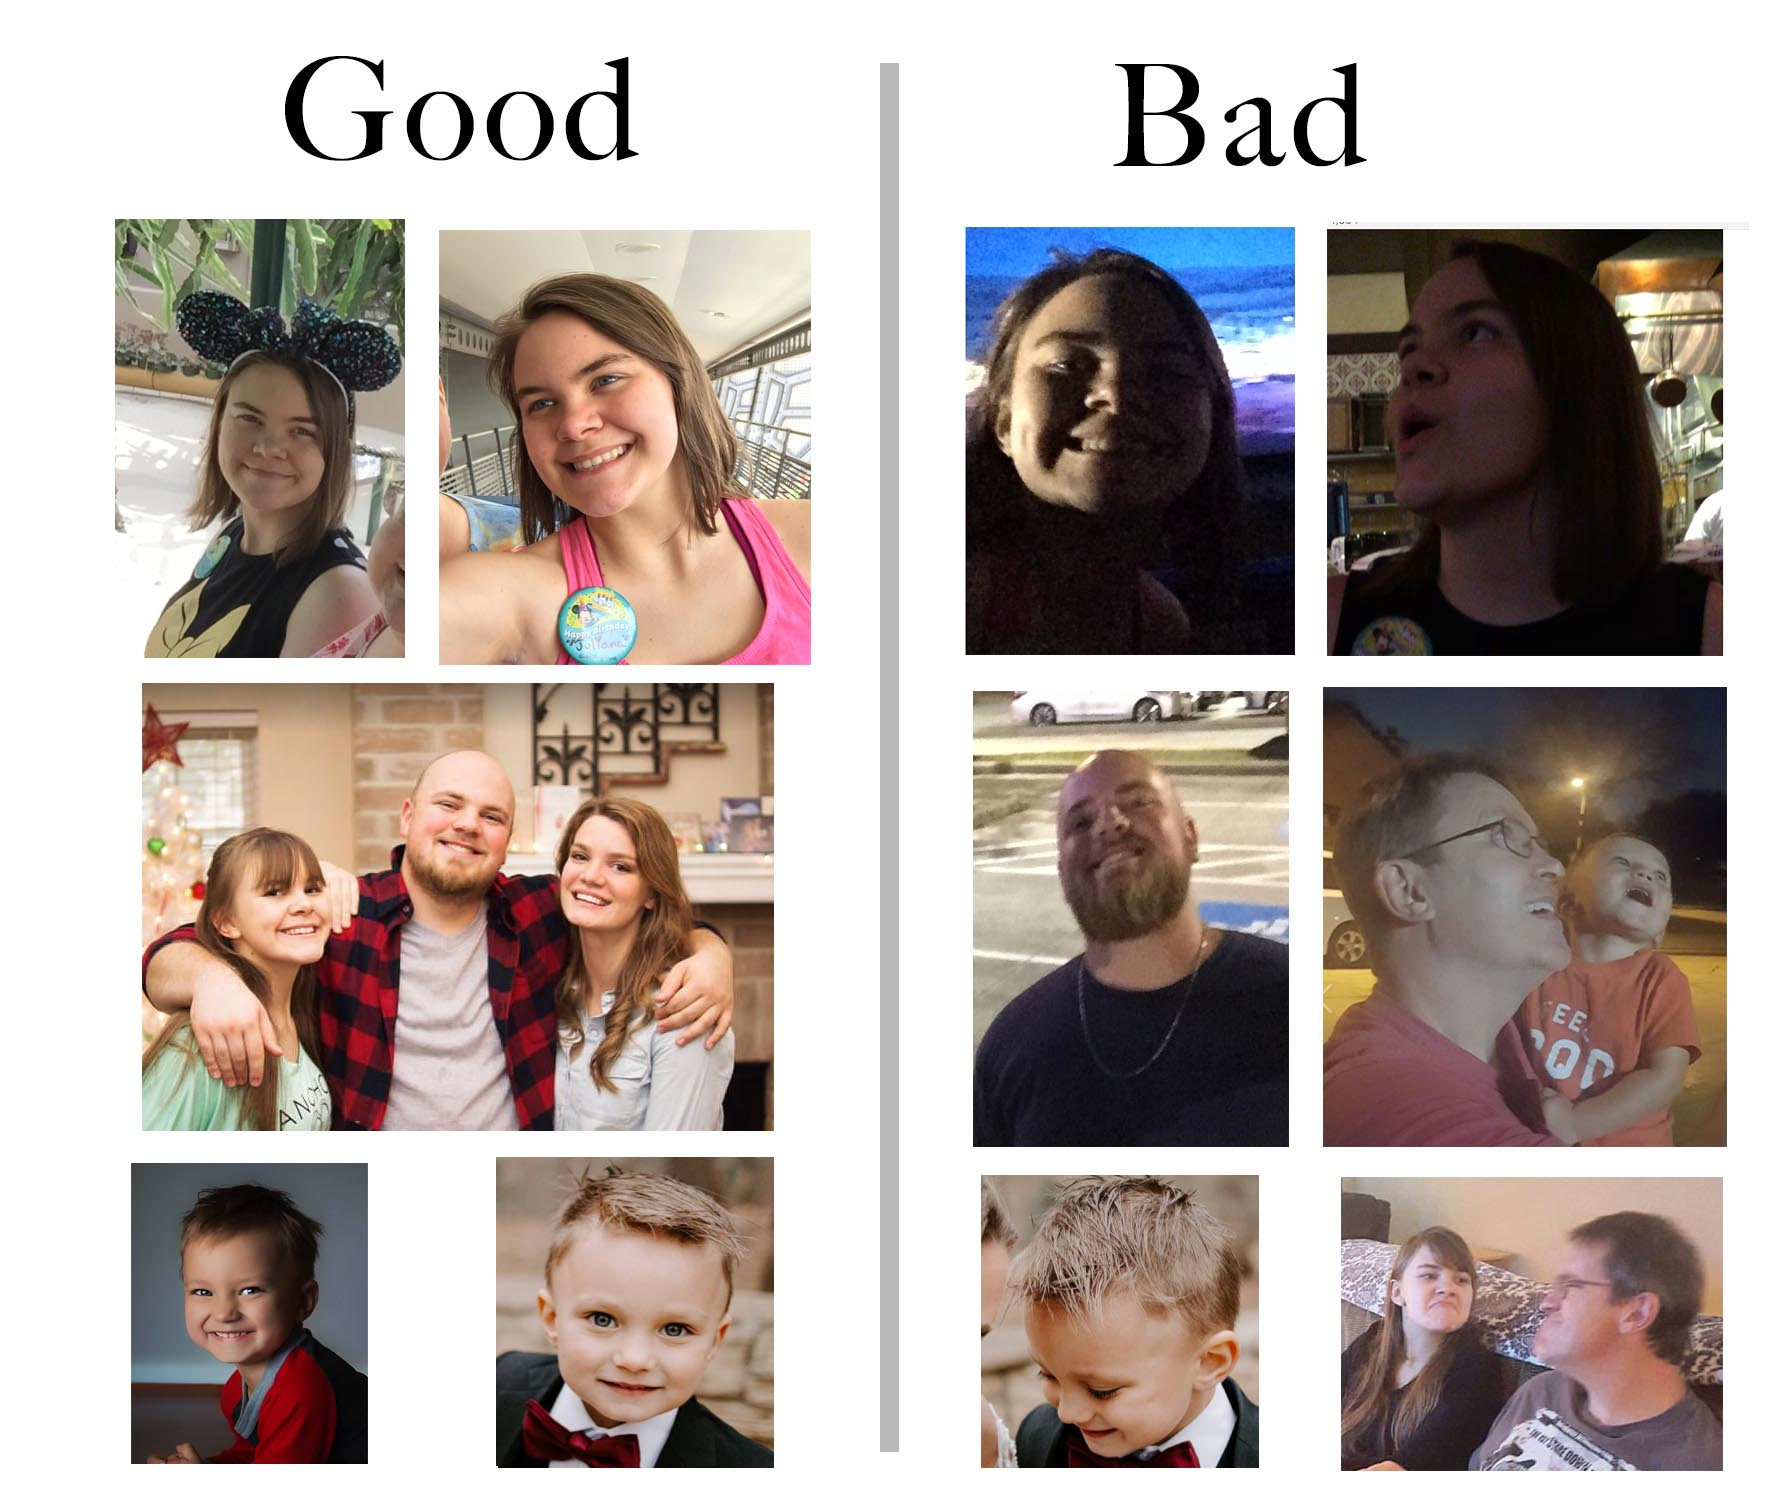 Good vs Bad Poses